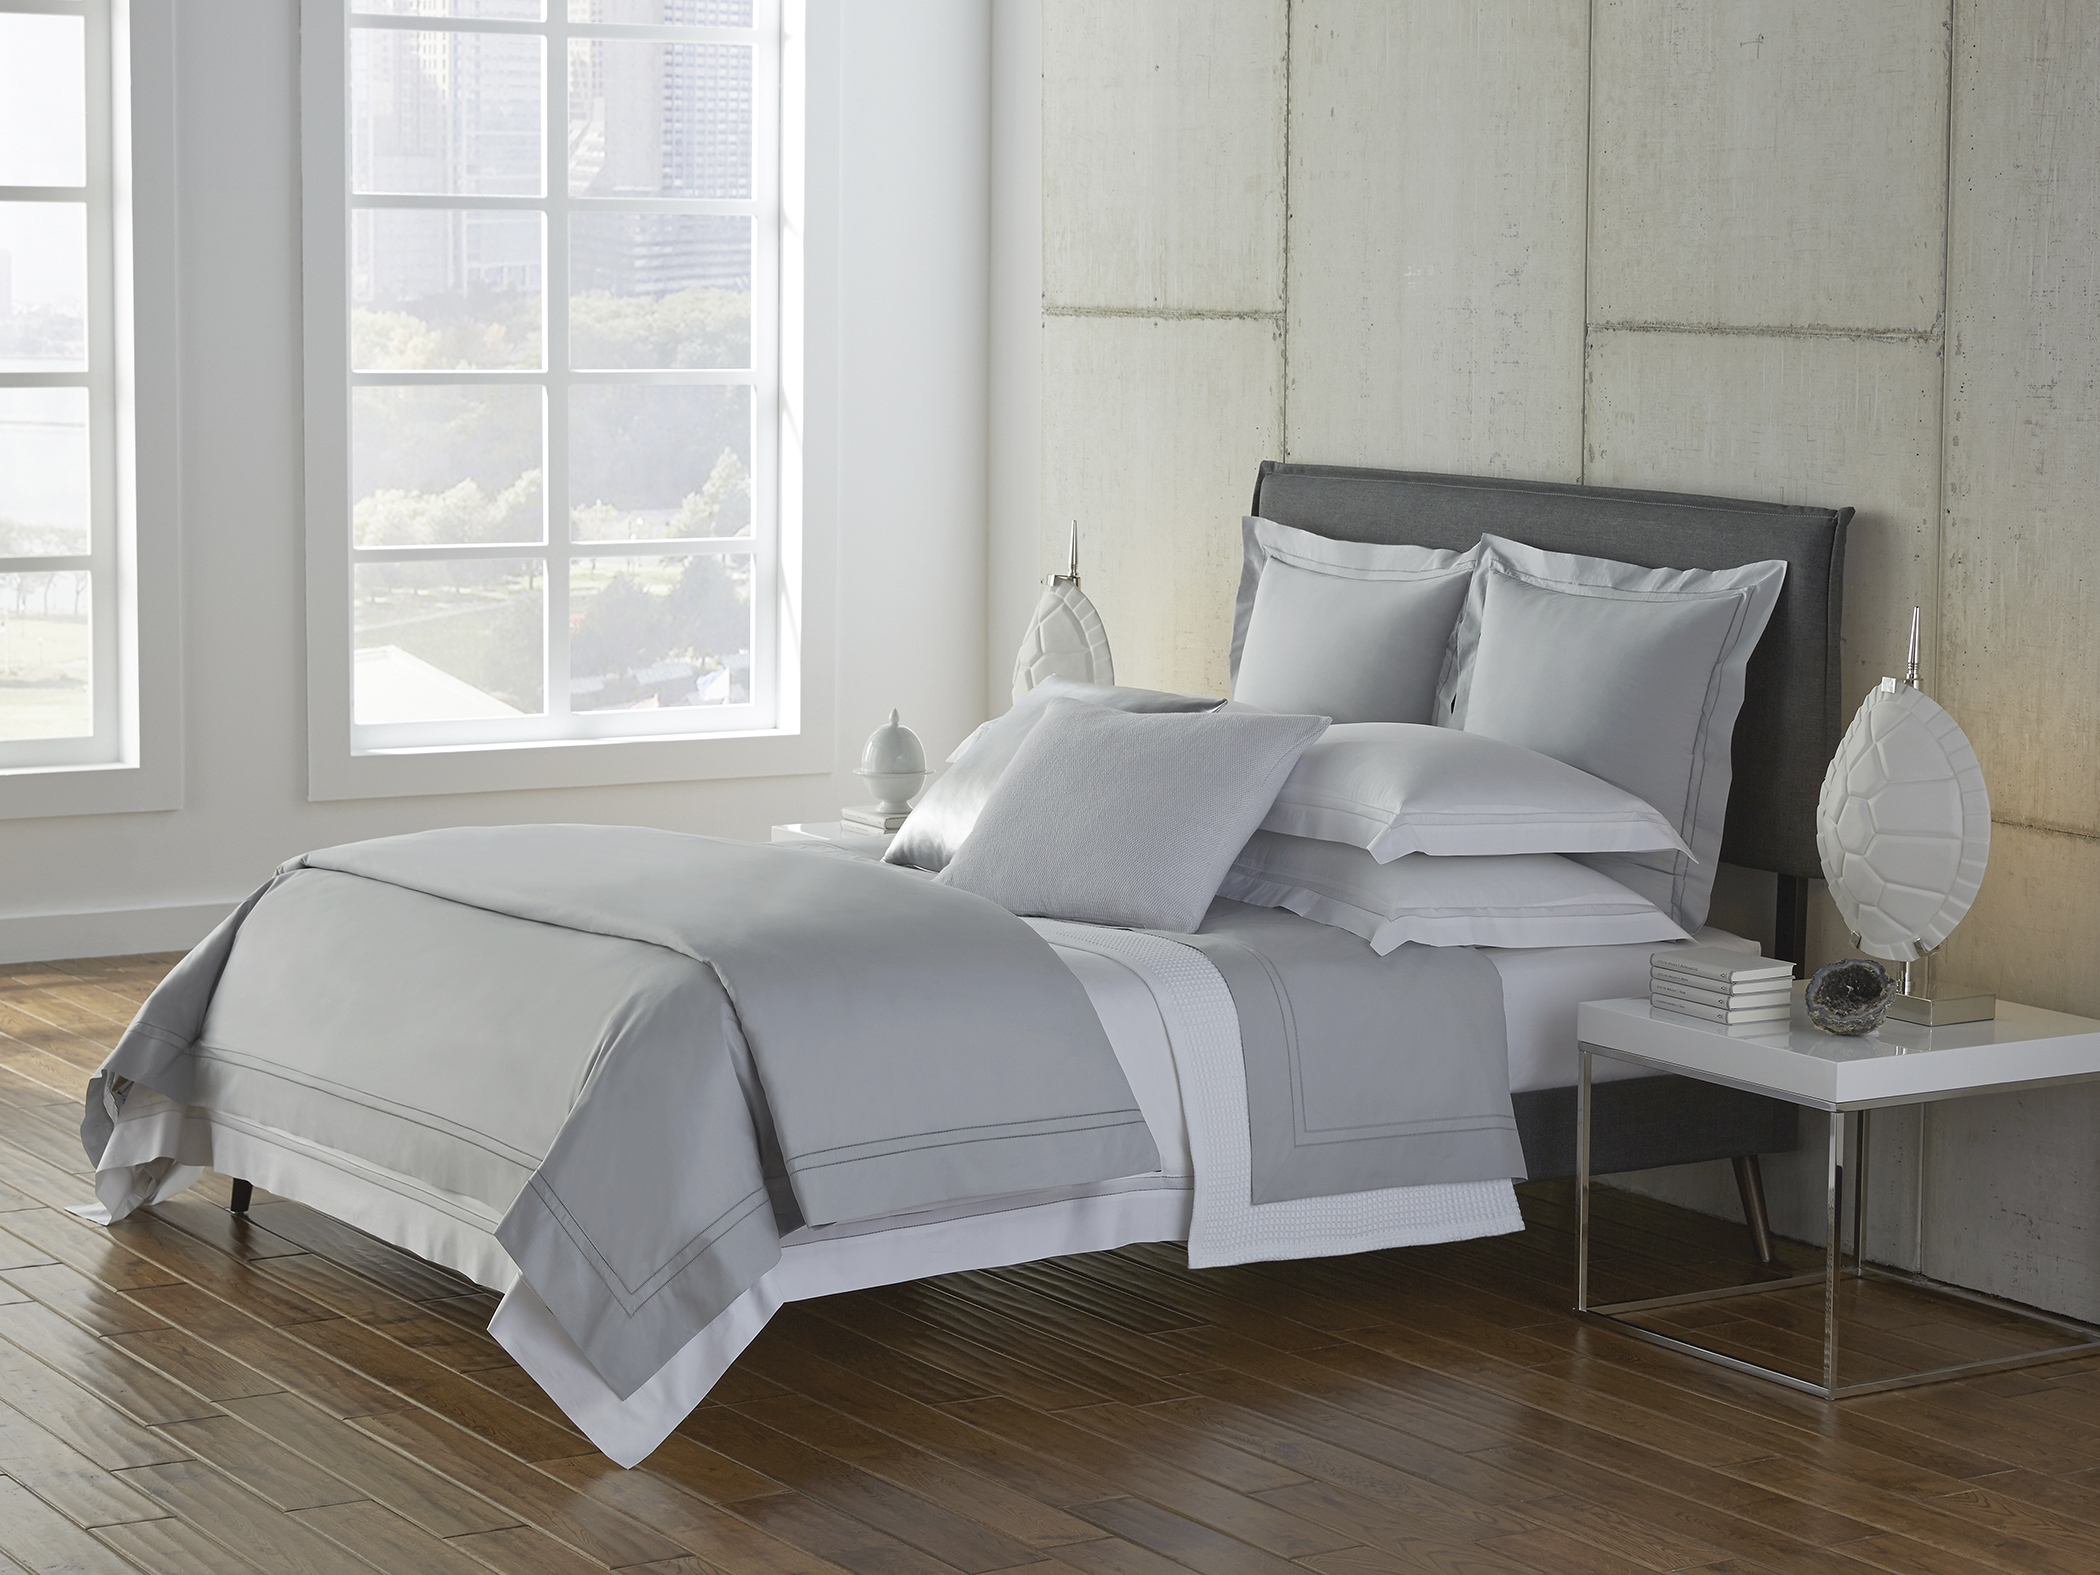 Finna Luxury Bedding By SFERRA